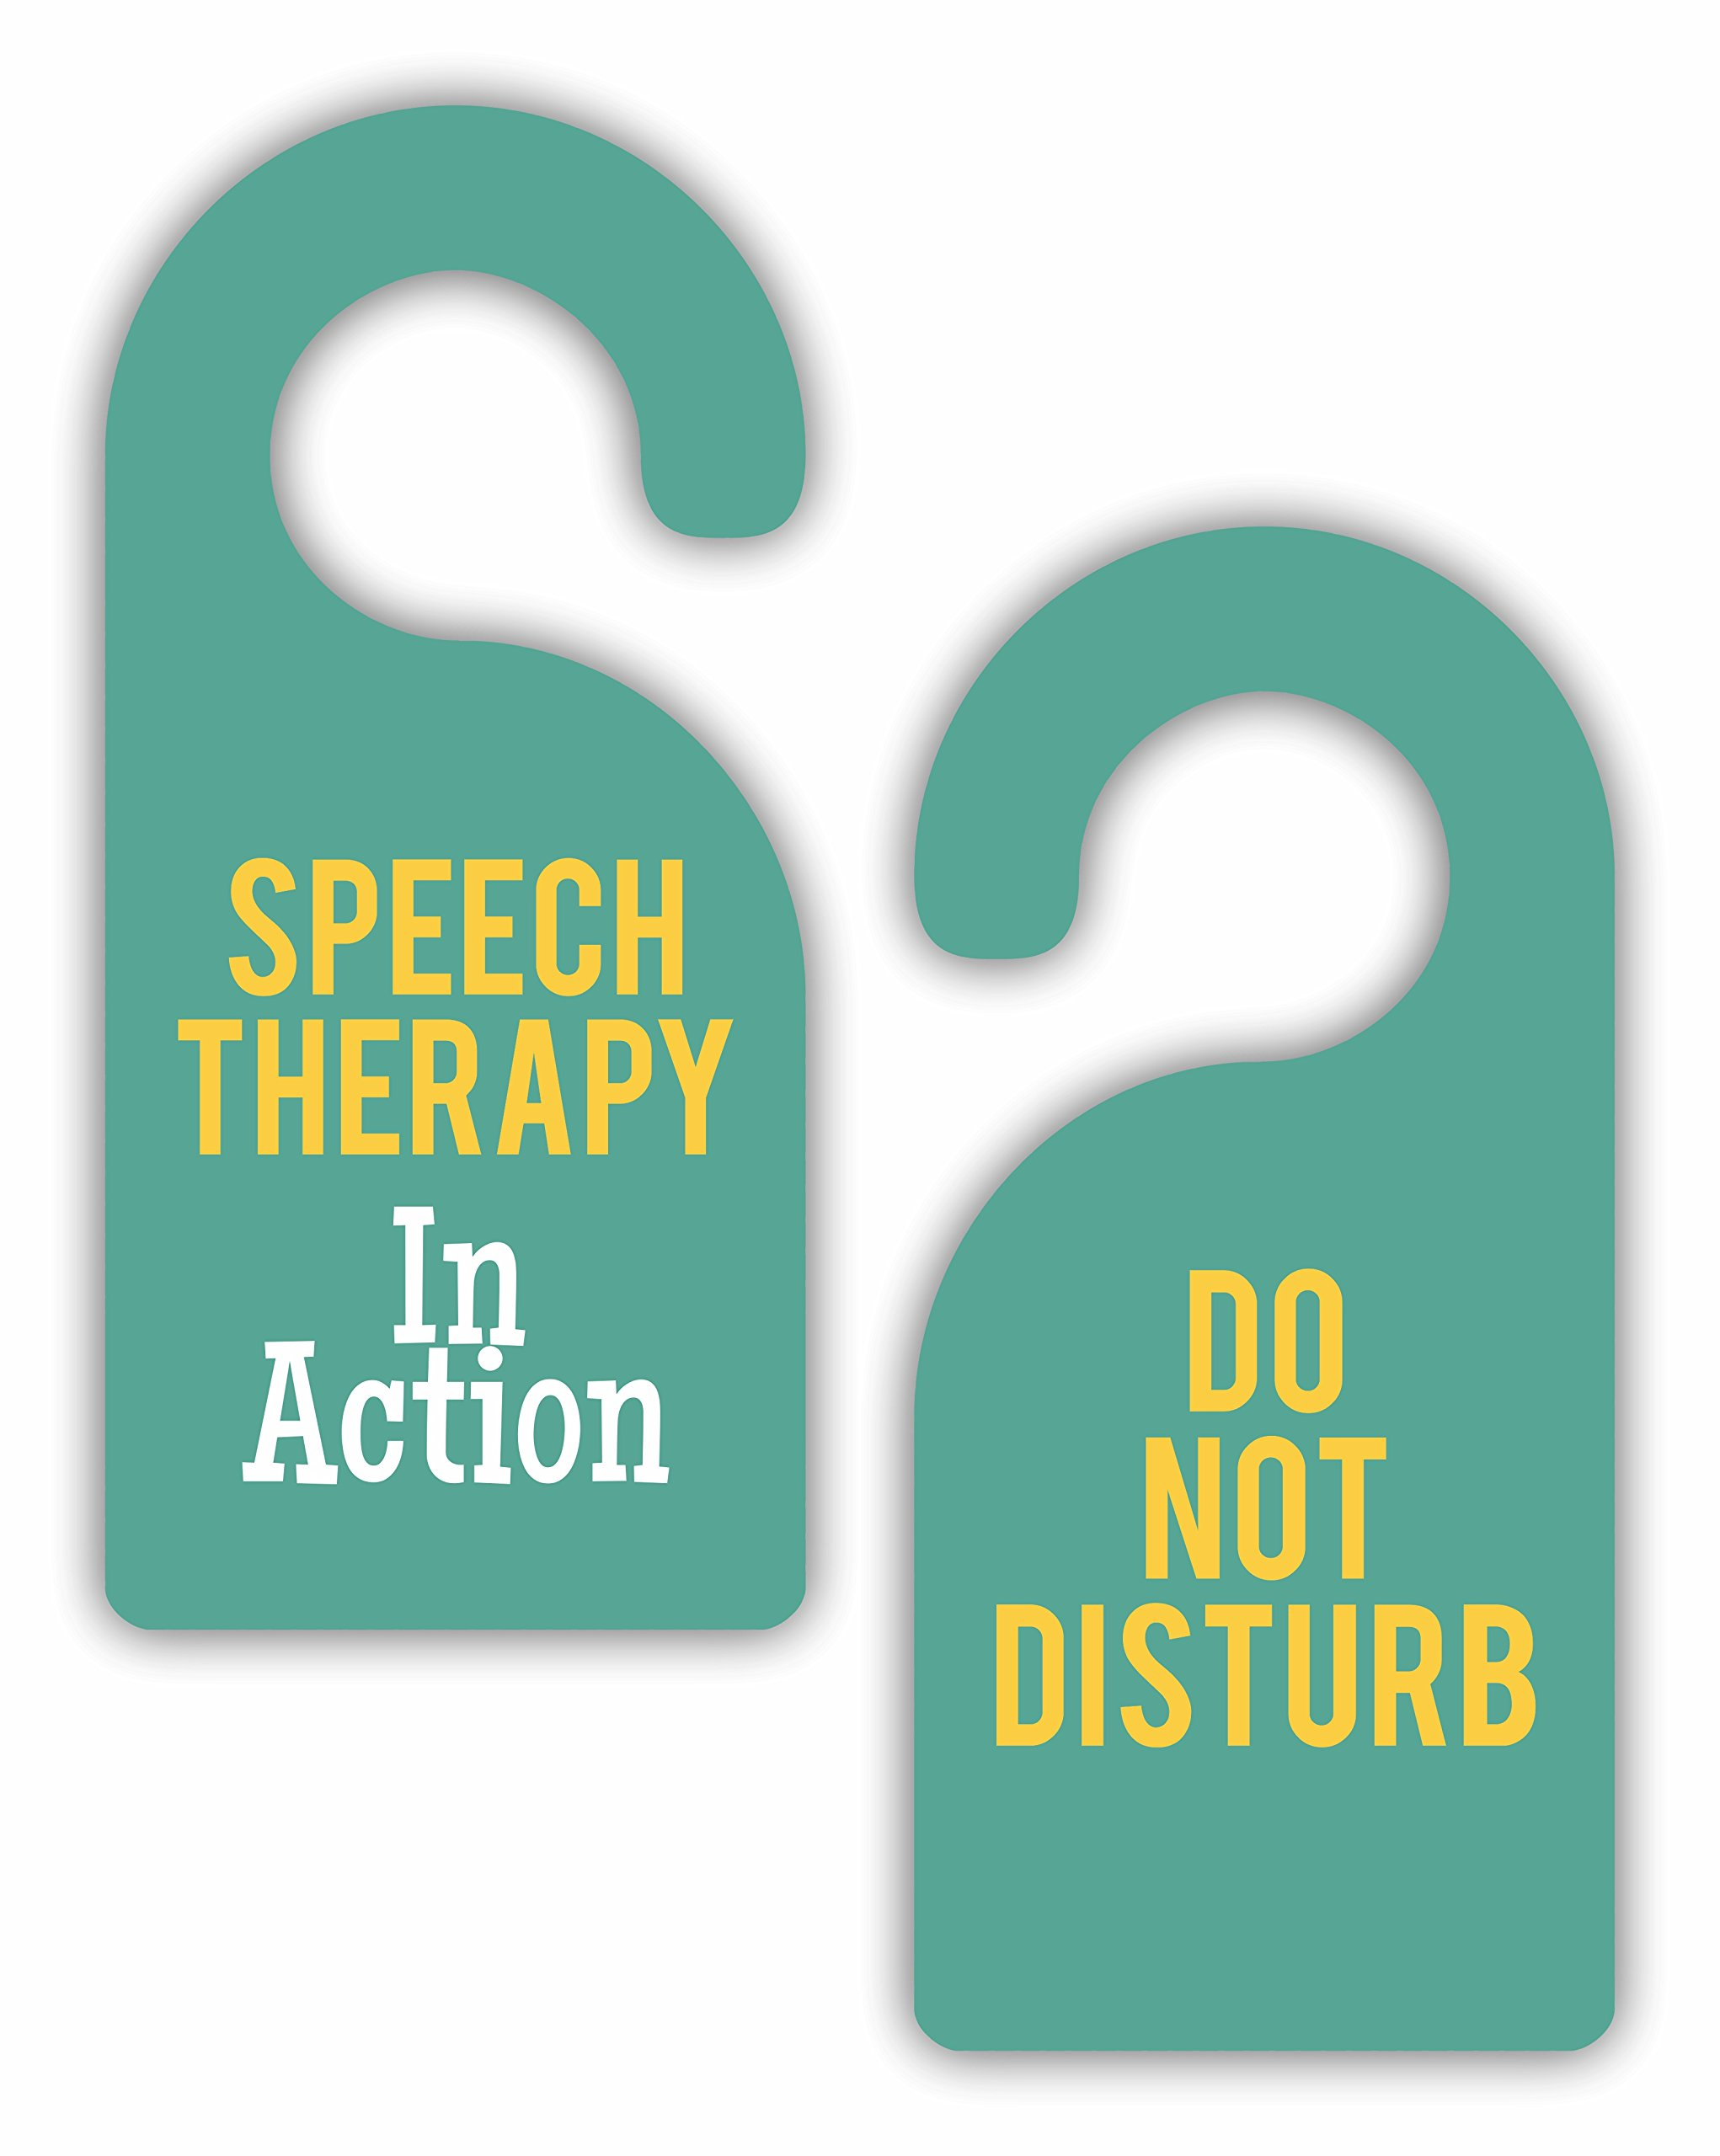 Speech Therapy in Action/Do Not Disturb - Therapist - Double-Sided Hard Plastic Glossy Door Hanger